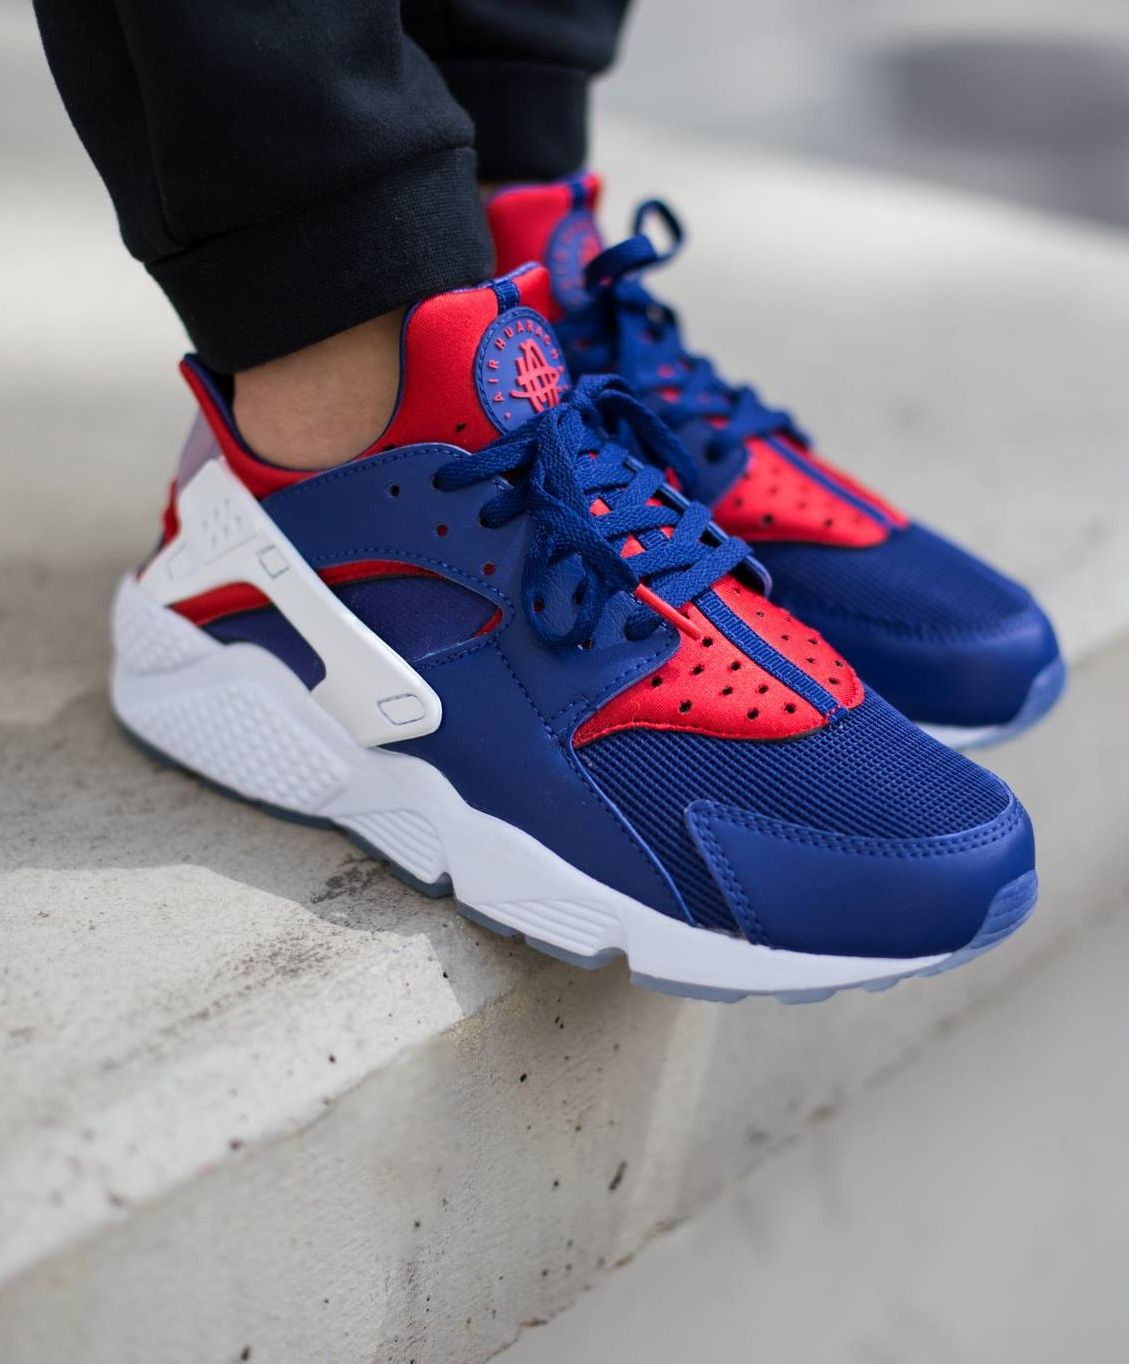 promo code 6e439 009f3 I often buy nike shoes this website. Very important reason is becasuse  theprice is so cheap, of course, quality can also, at the same price their  shoes I ...